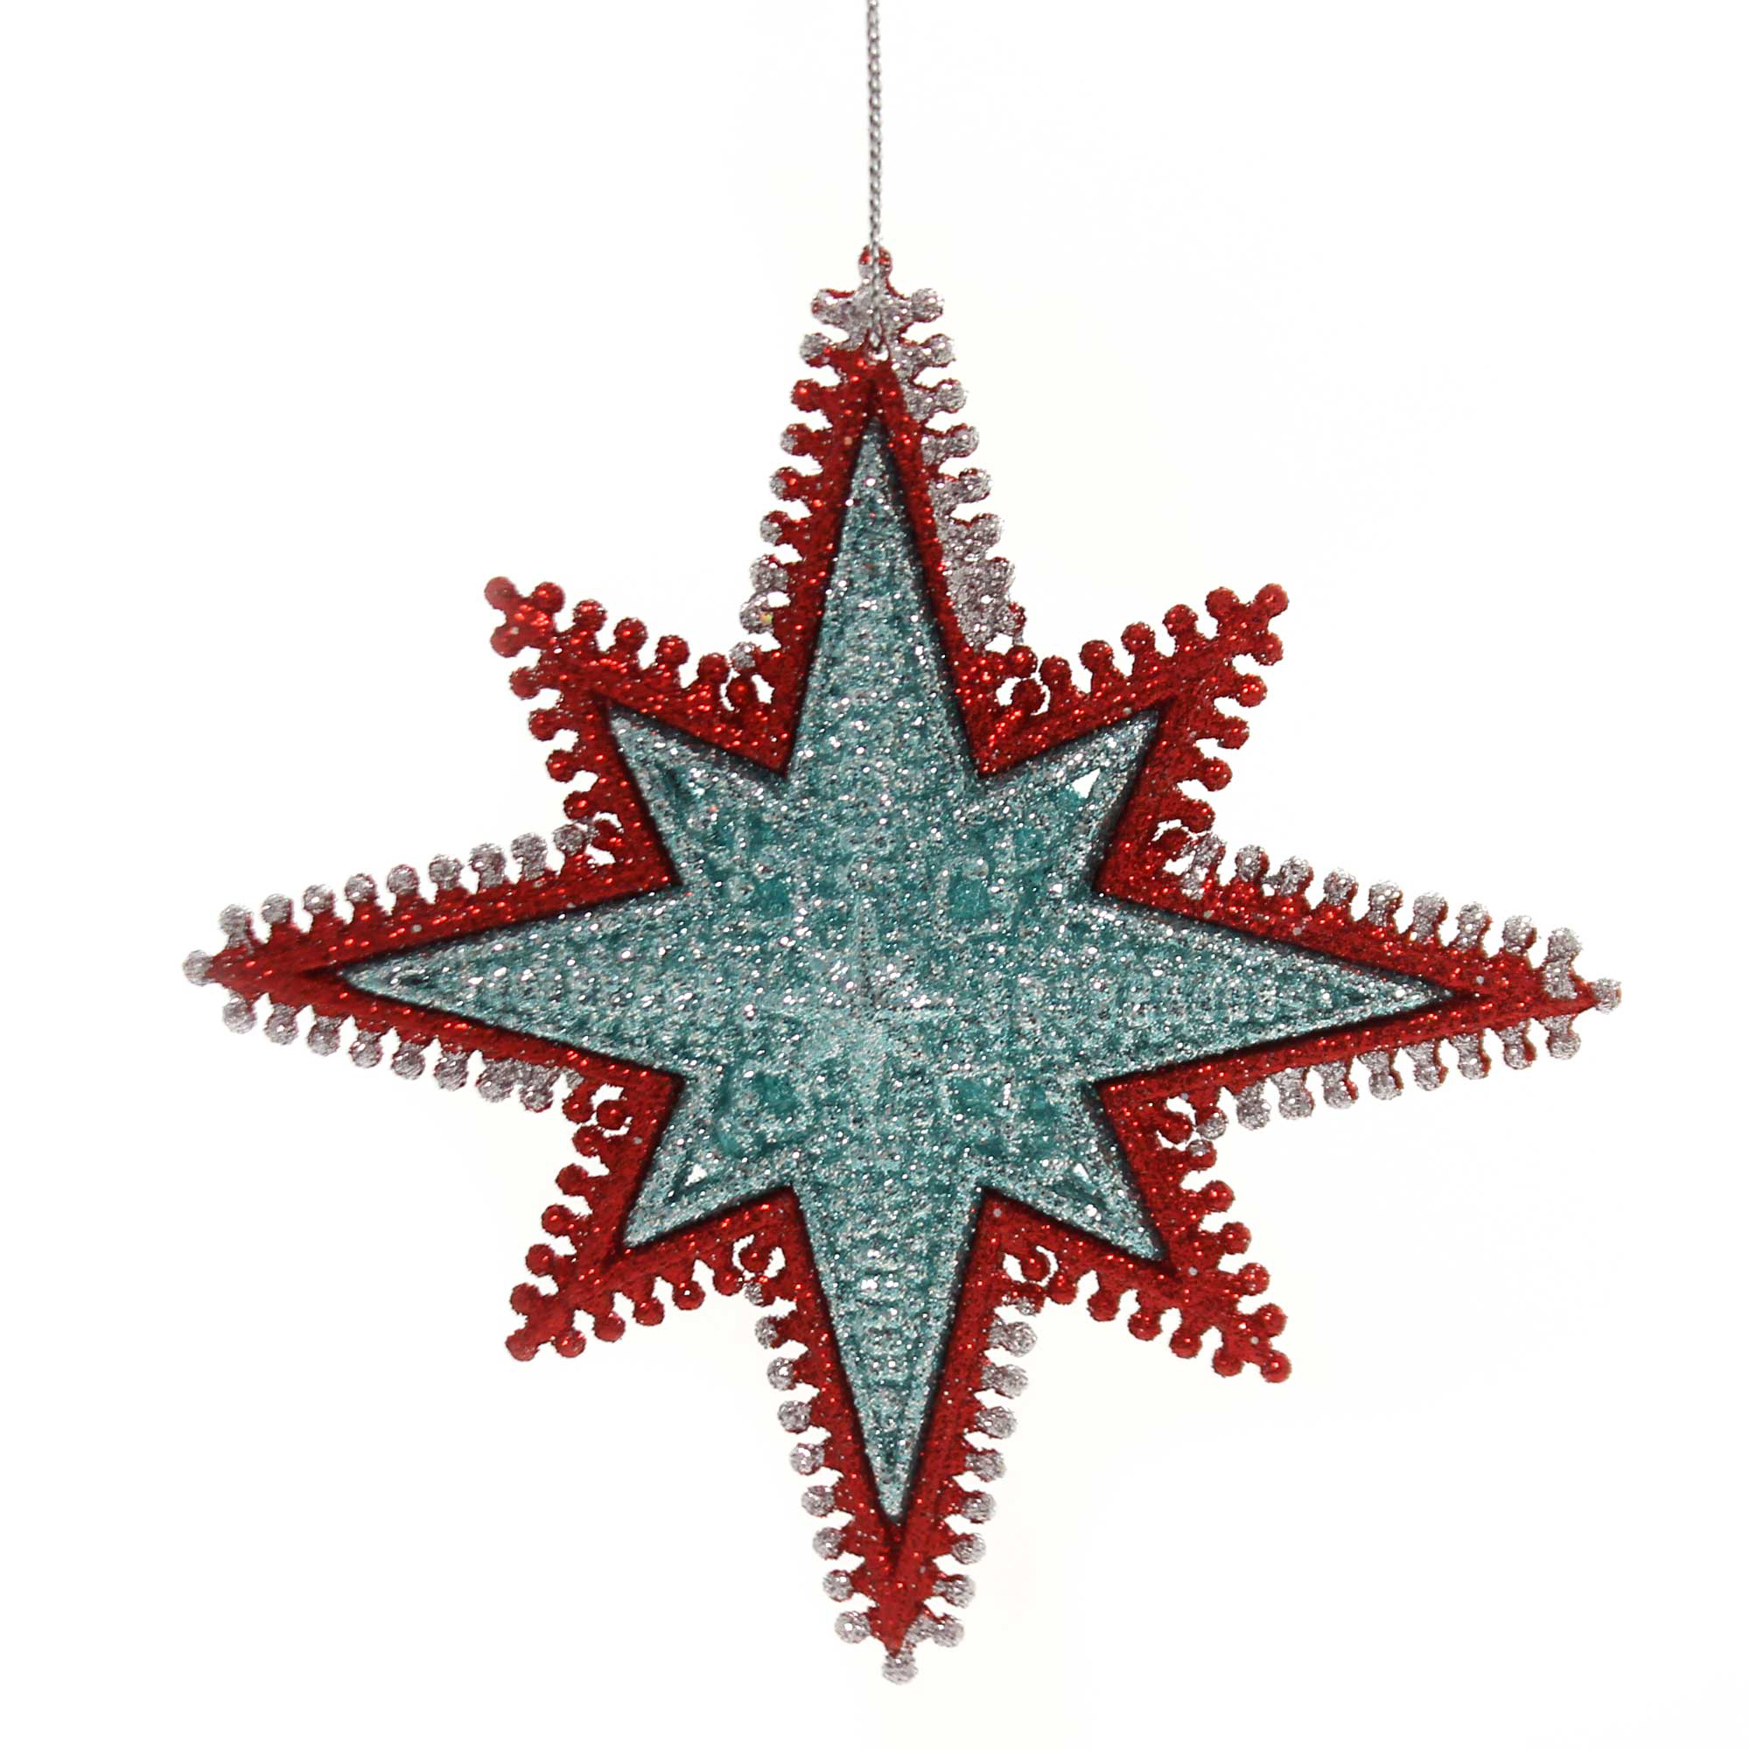 Holiday Ornaments STARBURST WIRED EDGING Plastic Red Gold Silver